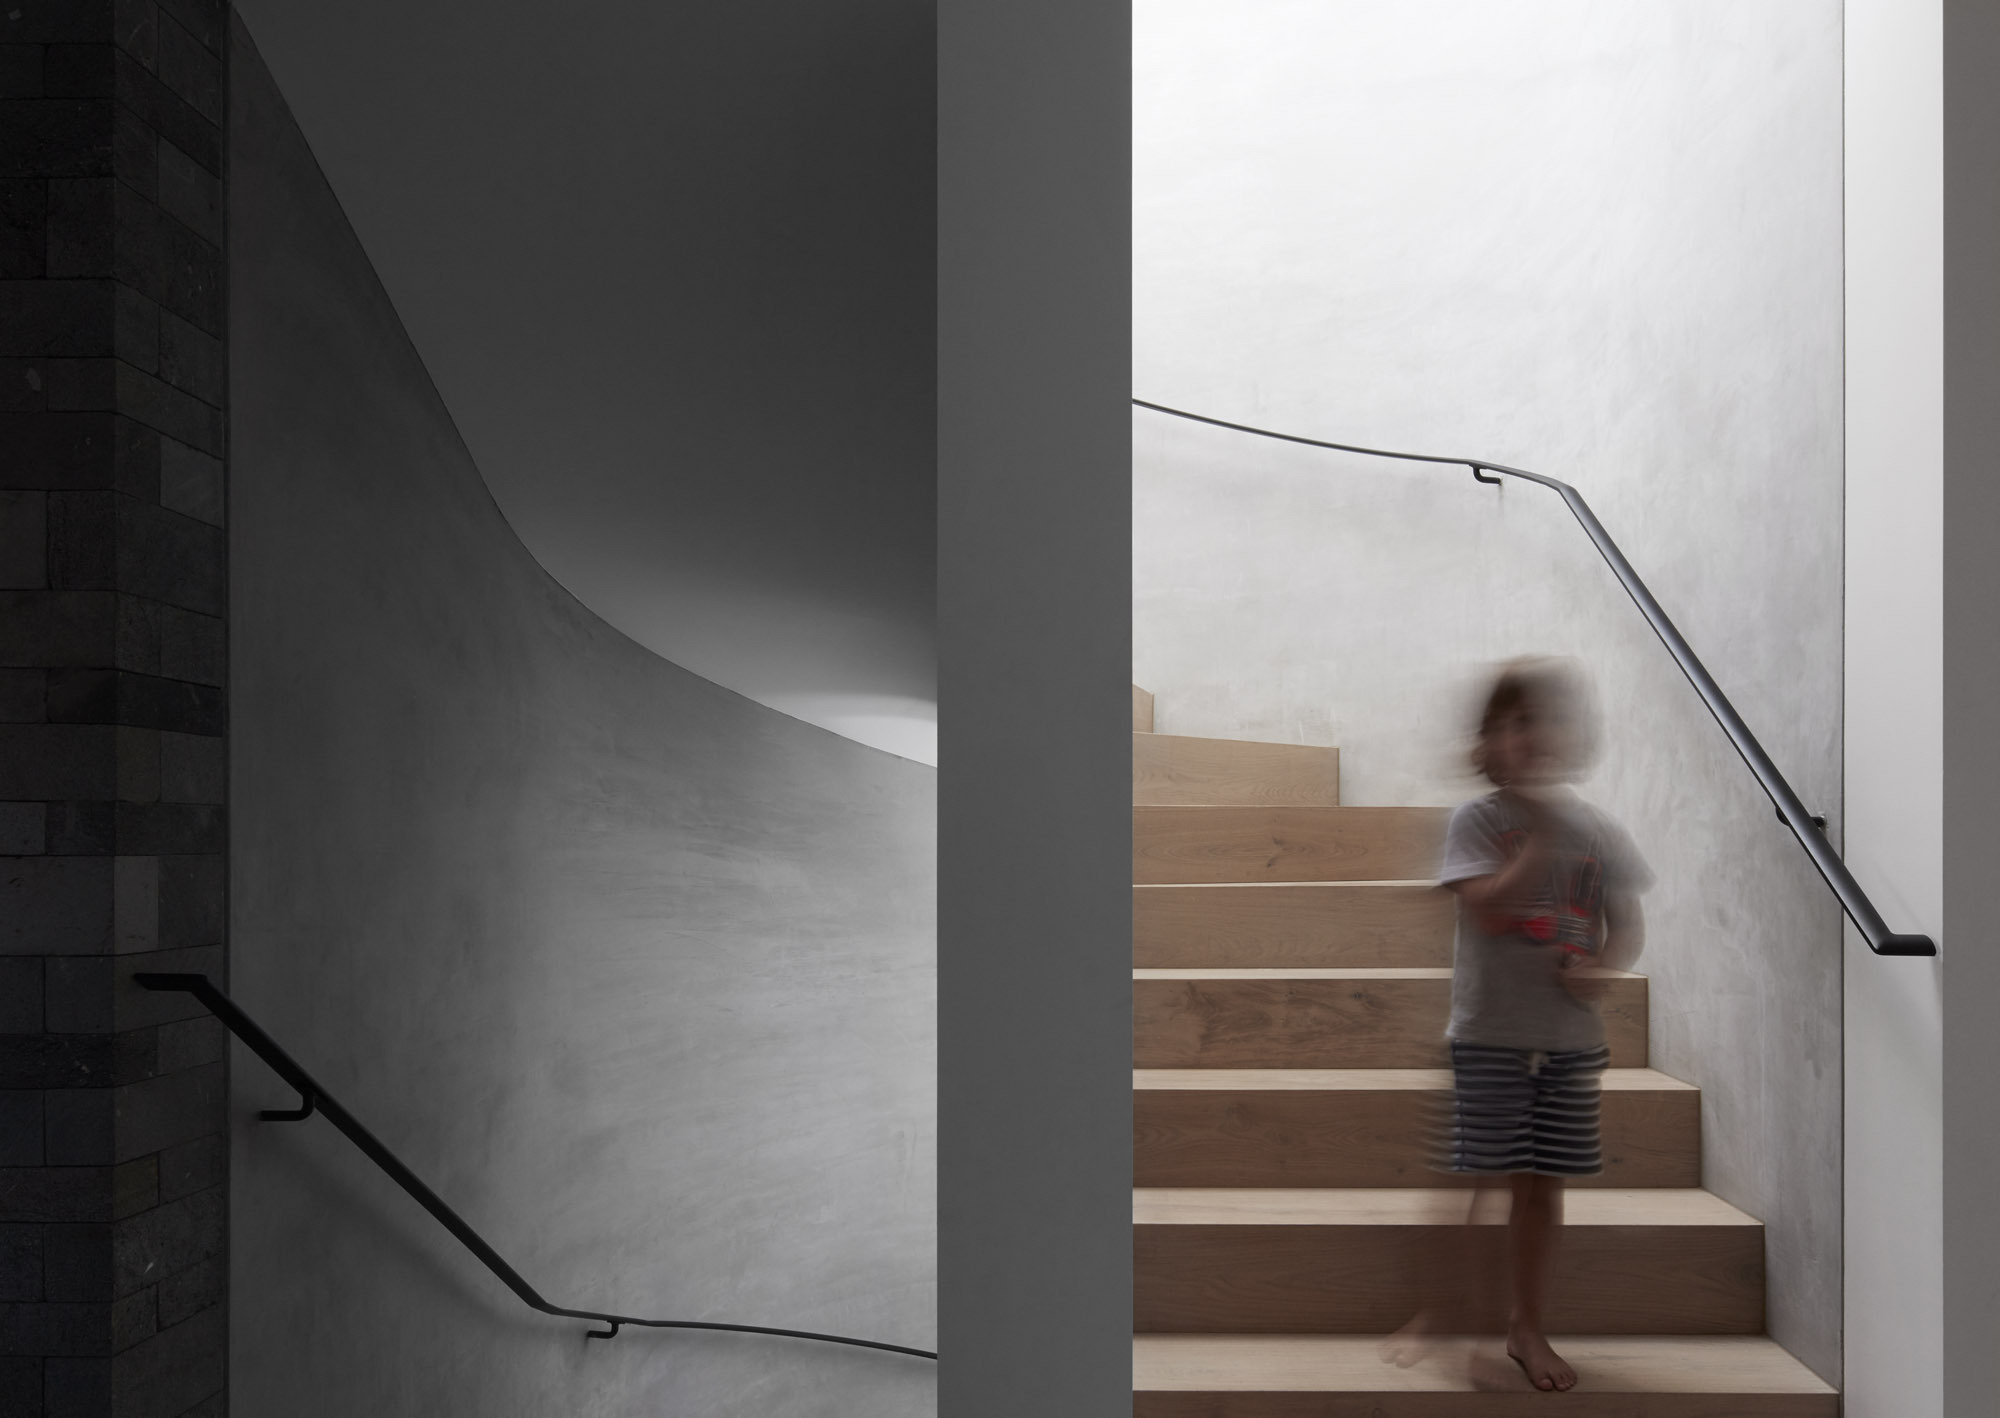 Best Image Canterbury Road Residence / B.E Architecture